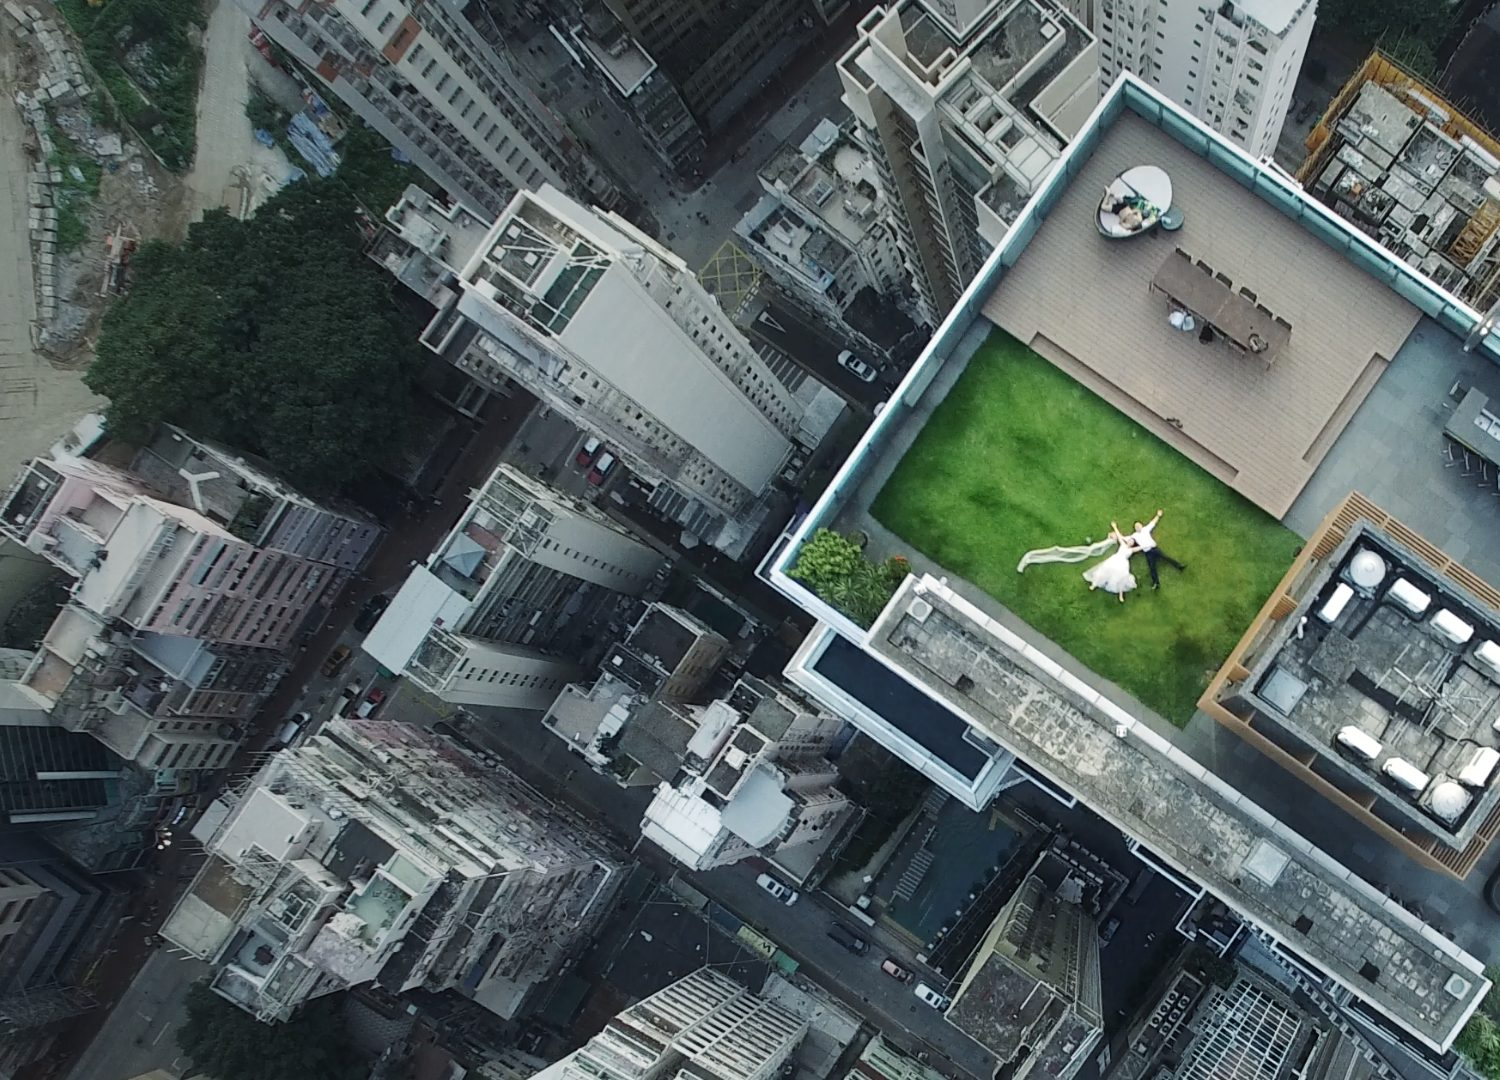 Drone rooftop newlyweds